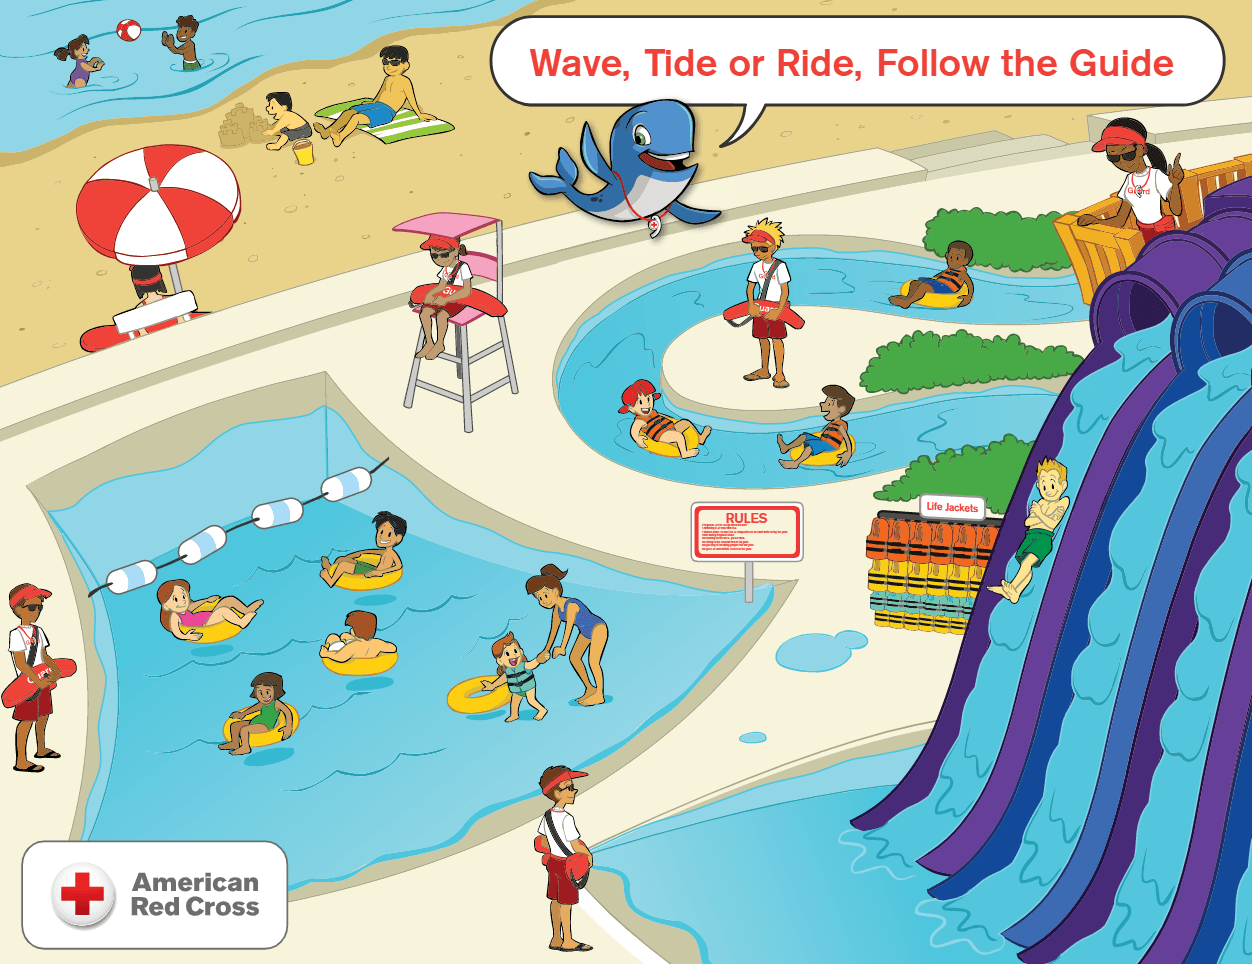 Wave, Tide or Ride, Follow the Guide